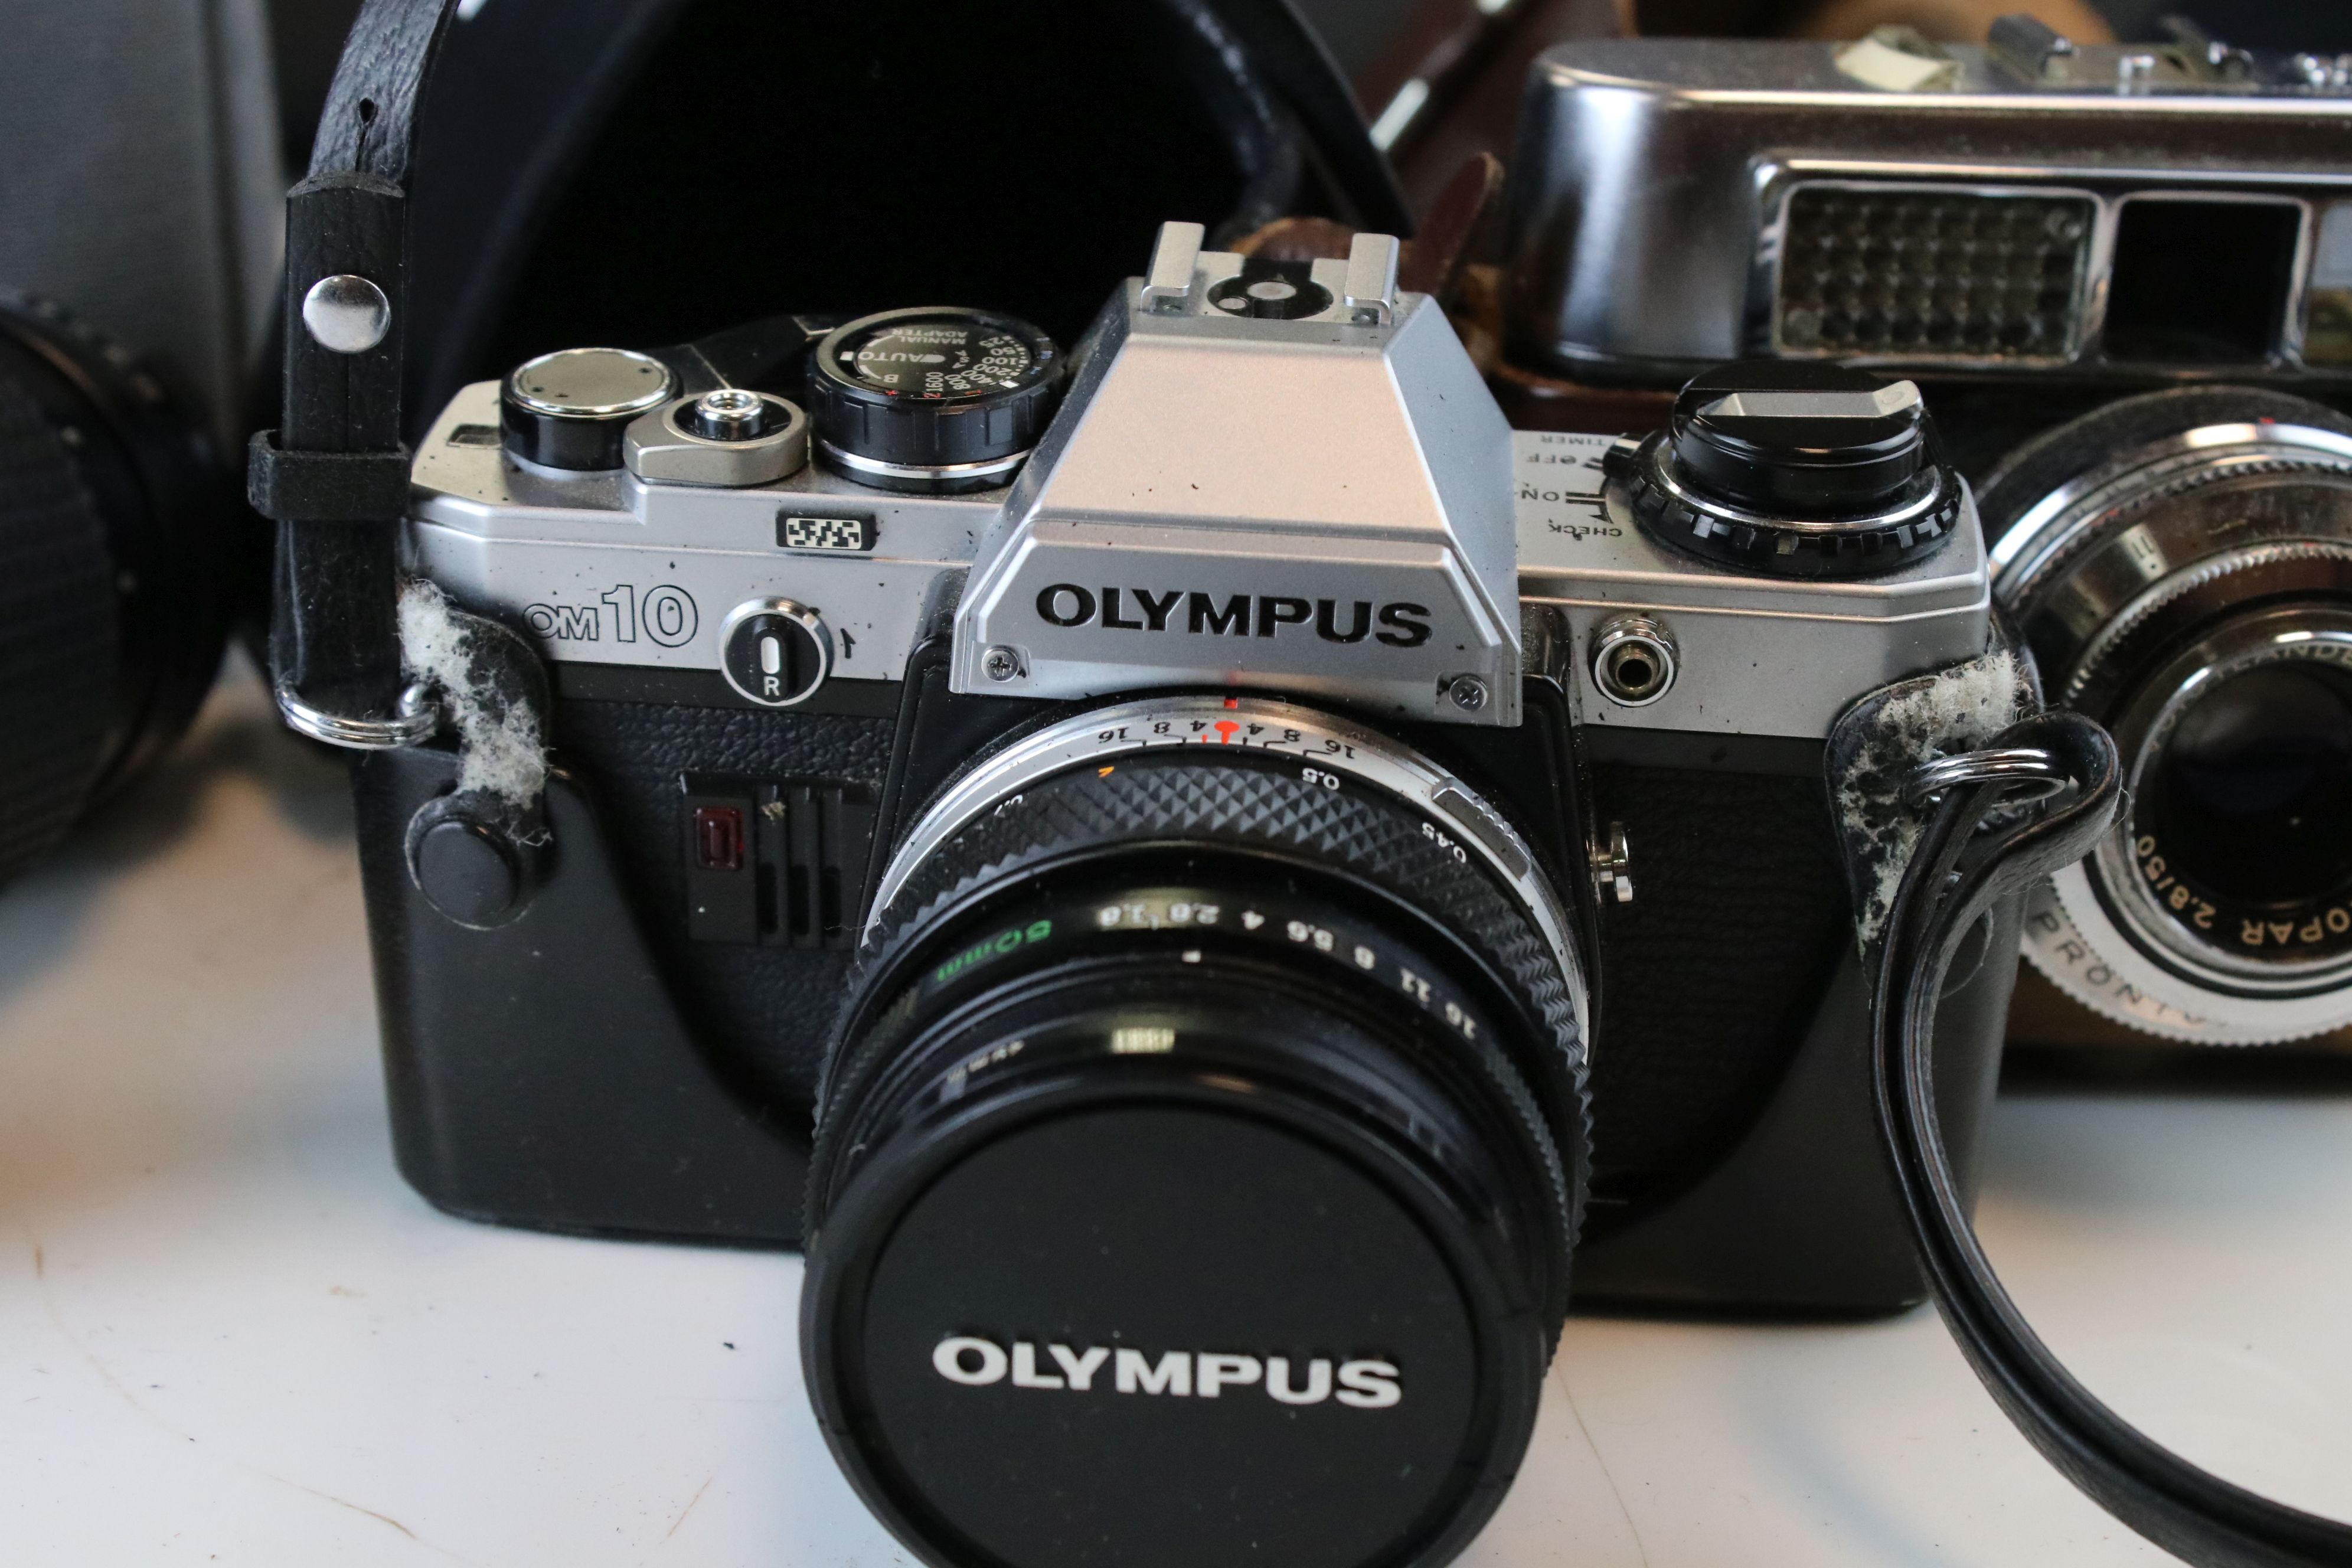 A collection of cameras and photographic equipment to include an Olympus OM10 35mm SLR camera. - Image 4 of 6